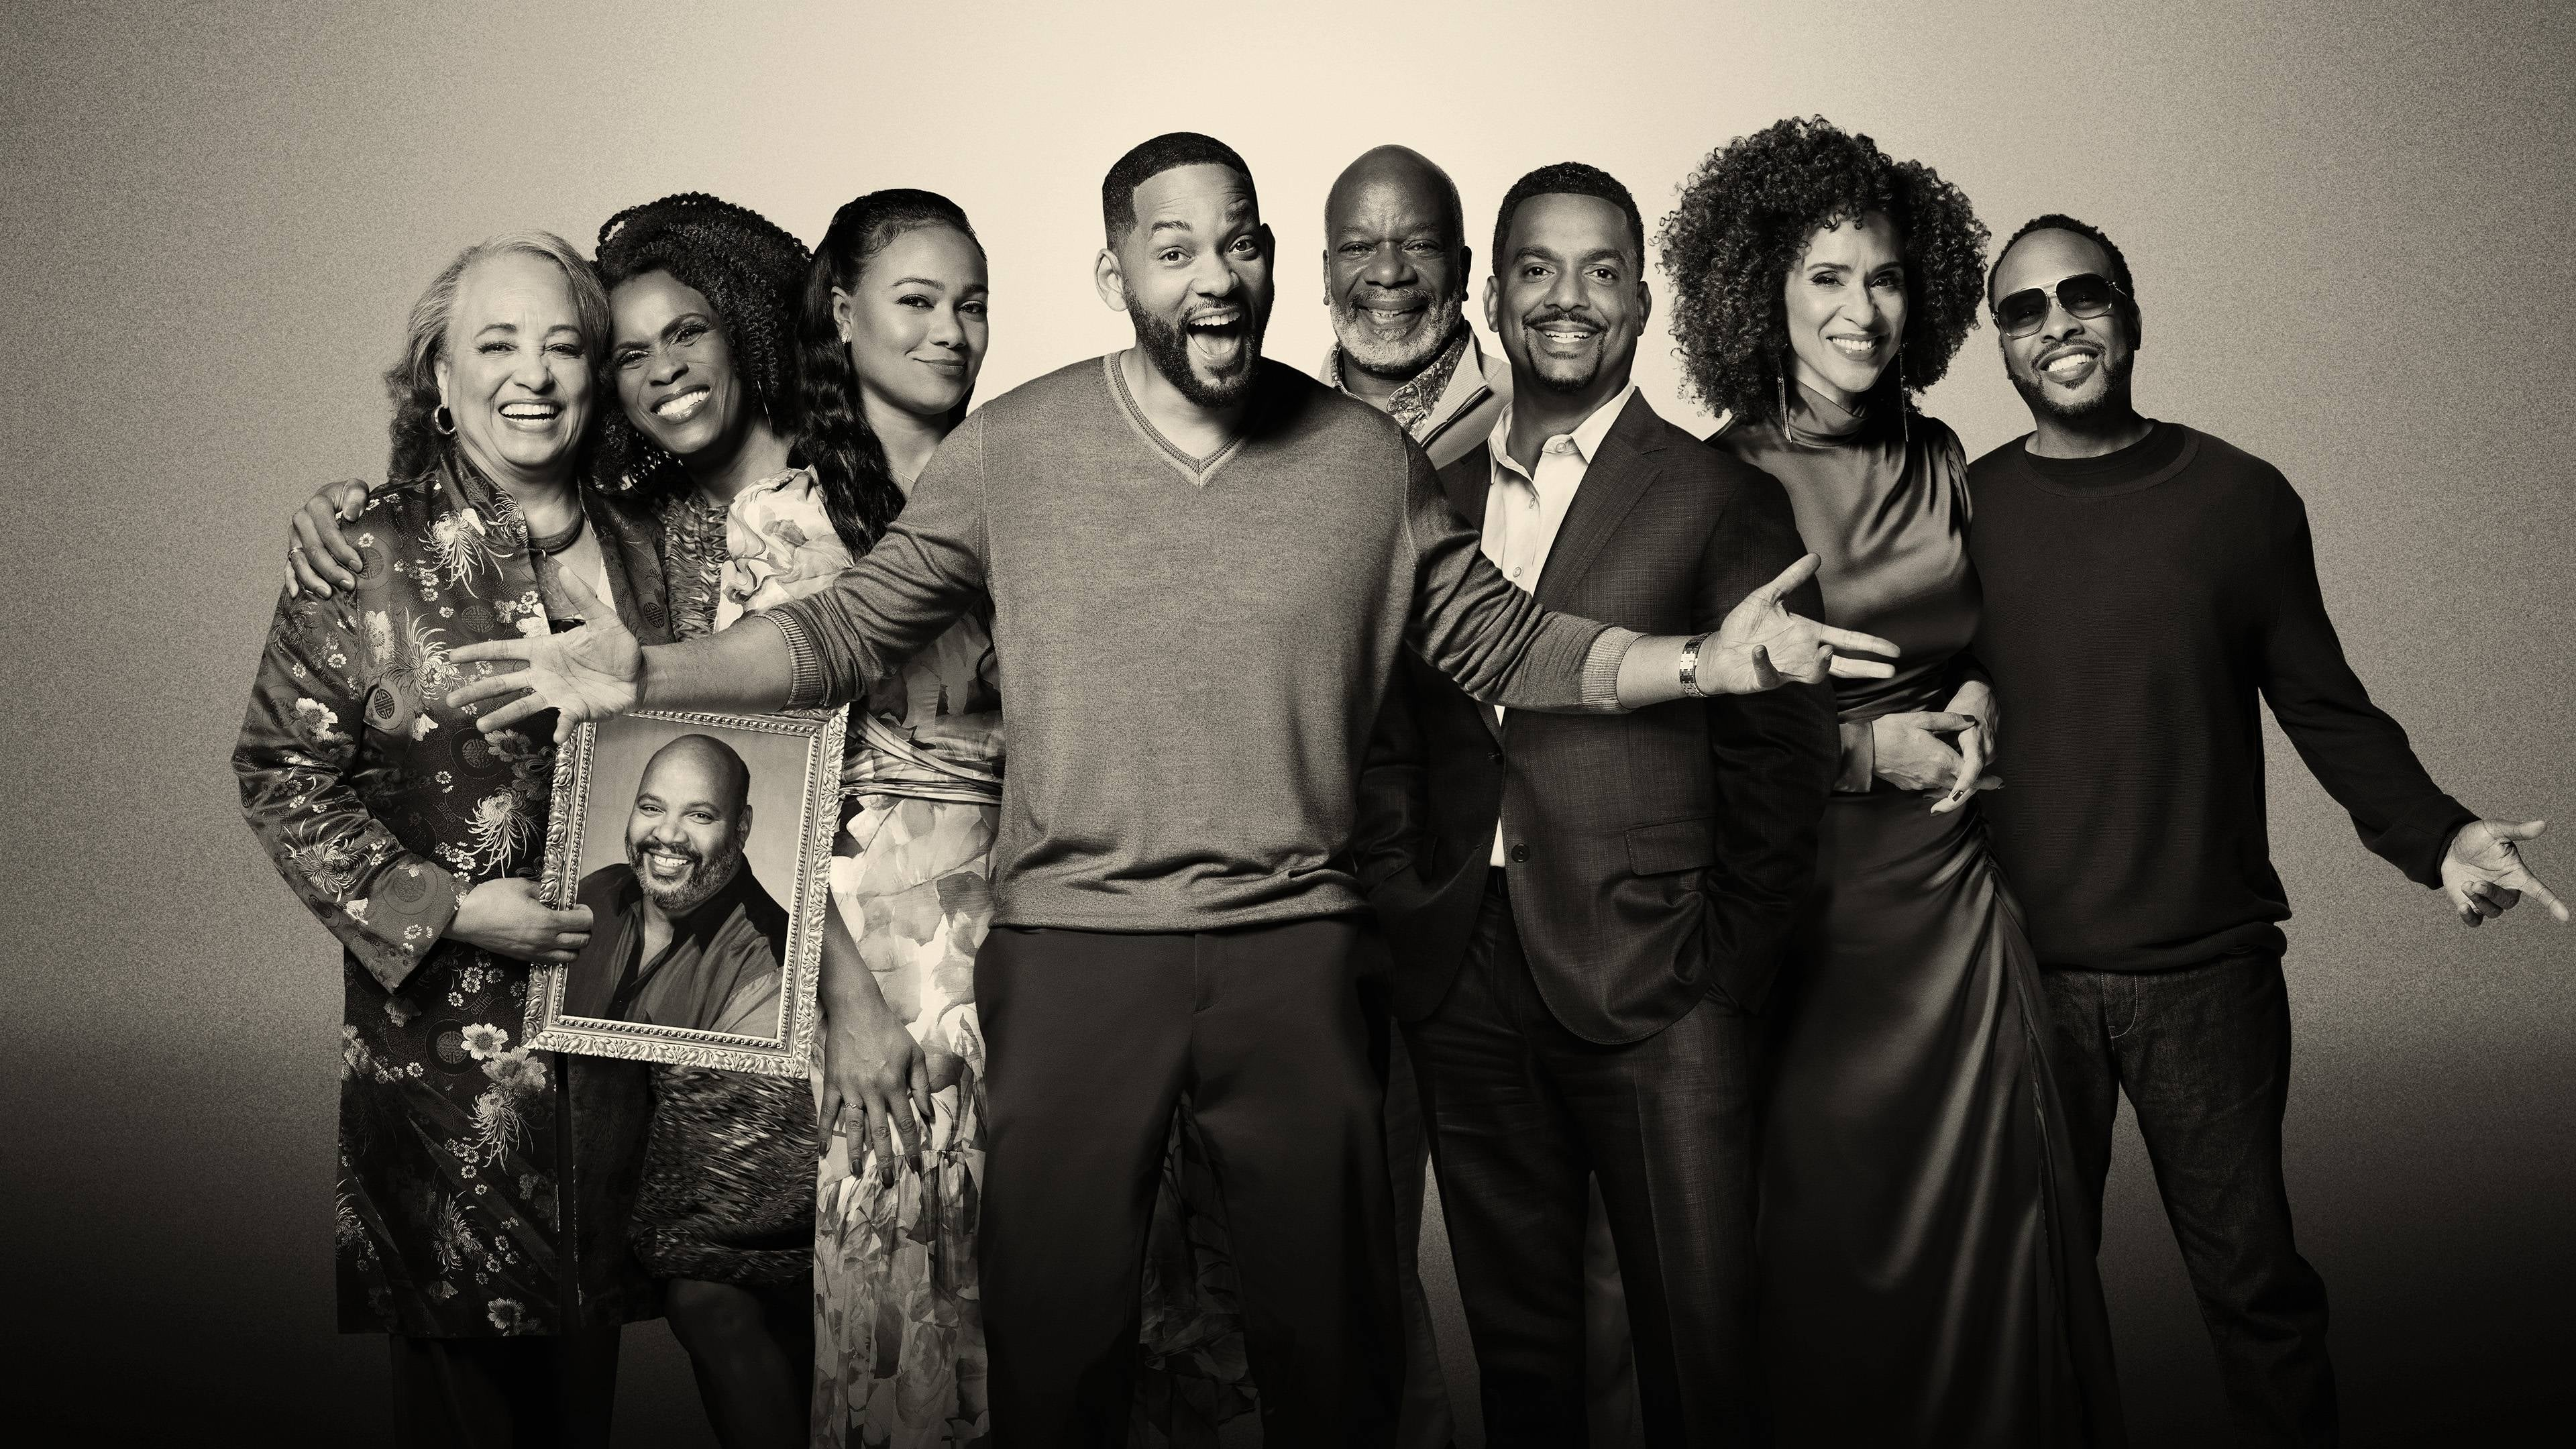 The Fresh Prince of Bel-Air Reunion Special